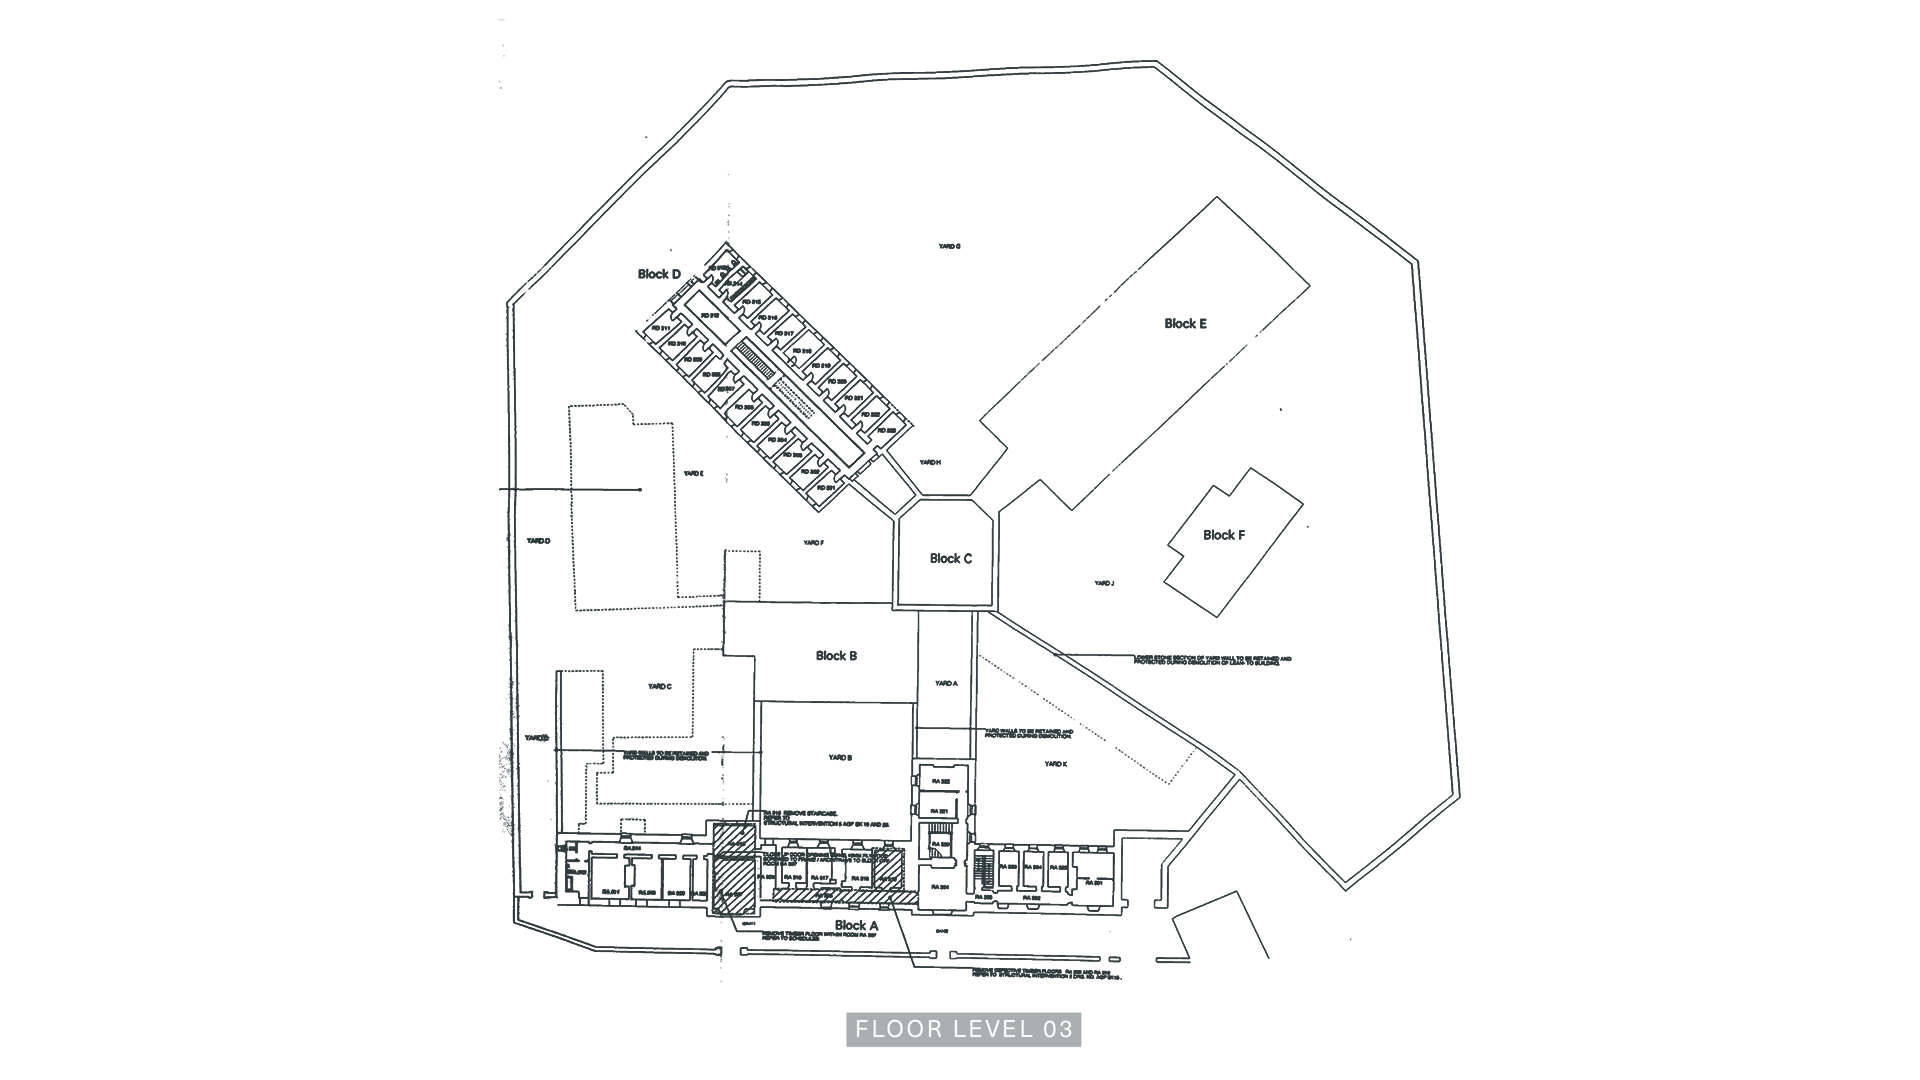 A Floor Plan of Level Three of the Armagh Gaol.